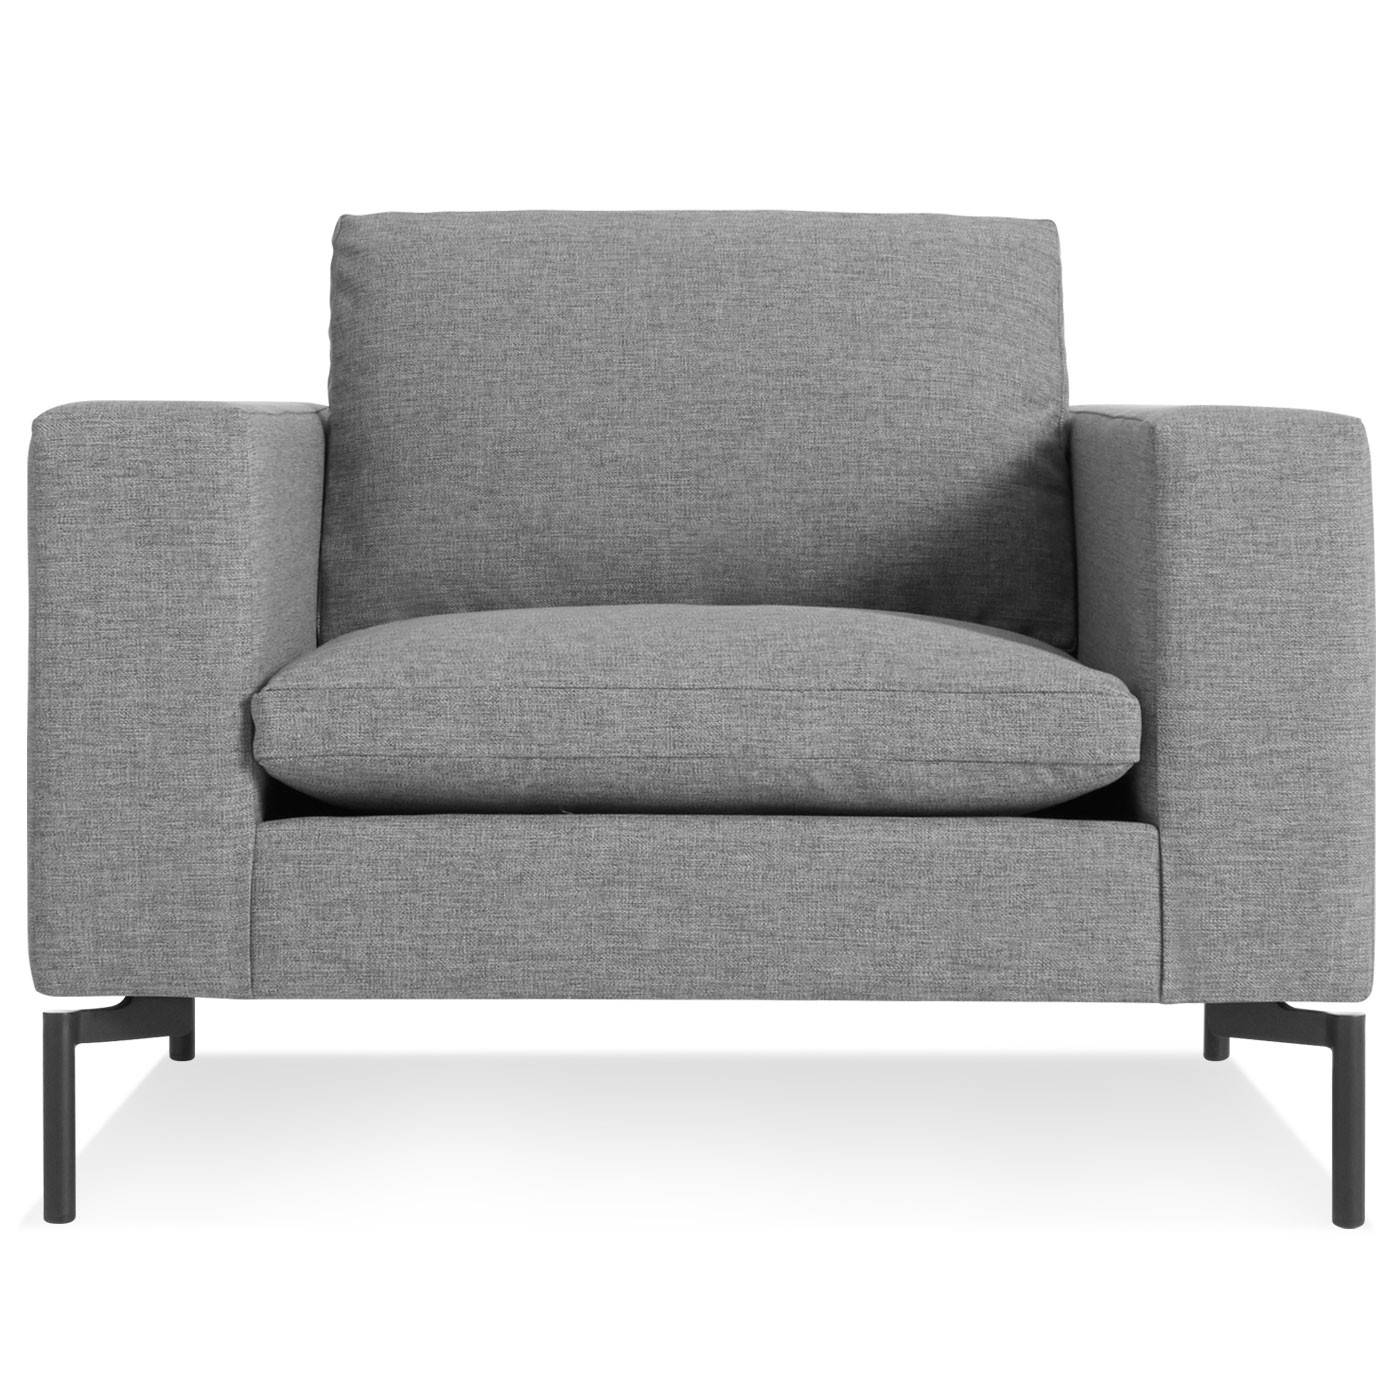 New Standard Lounge Chair – Modern Lounge Chairs | Blu Dot within Sofa Lounge Chairs (Image 21 of 30)